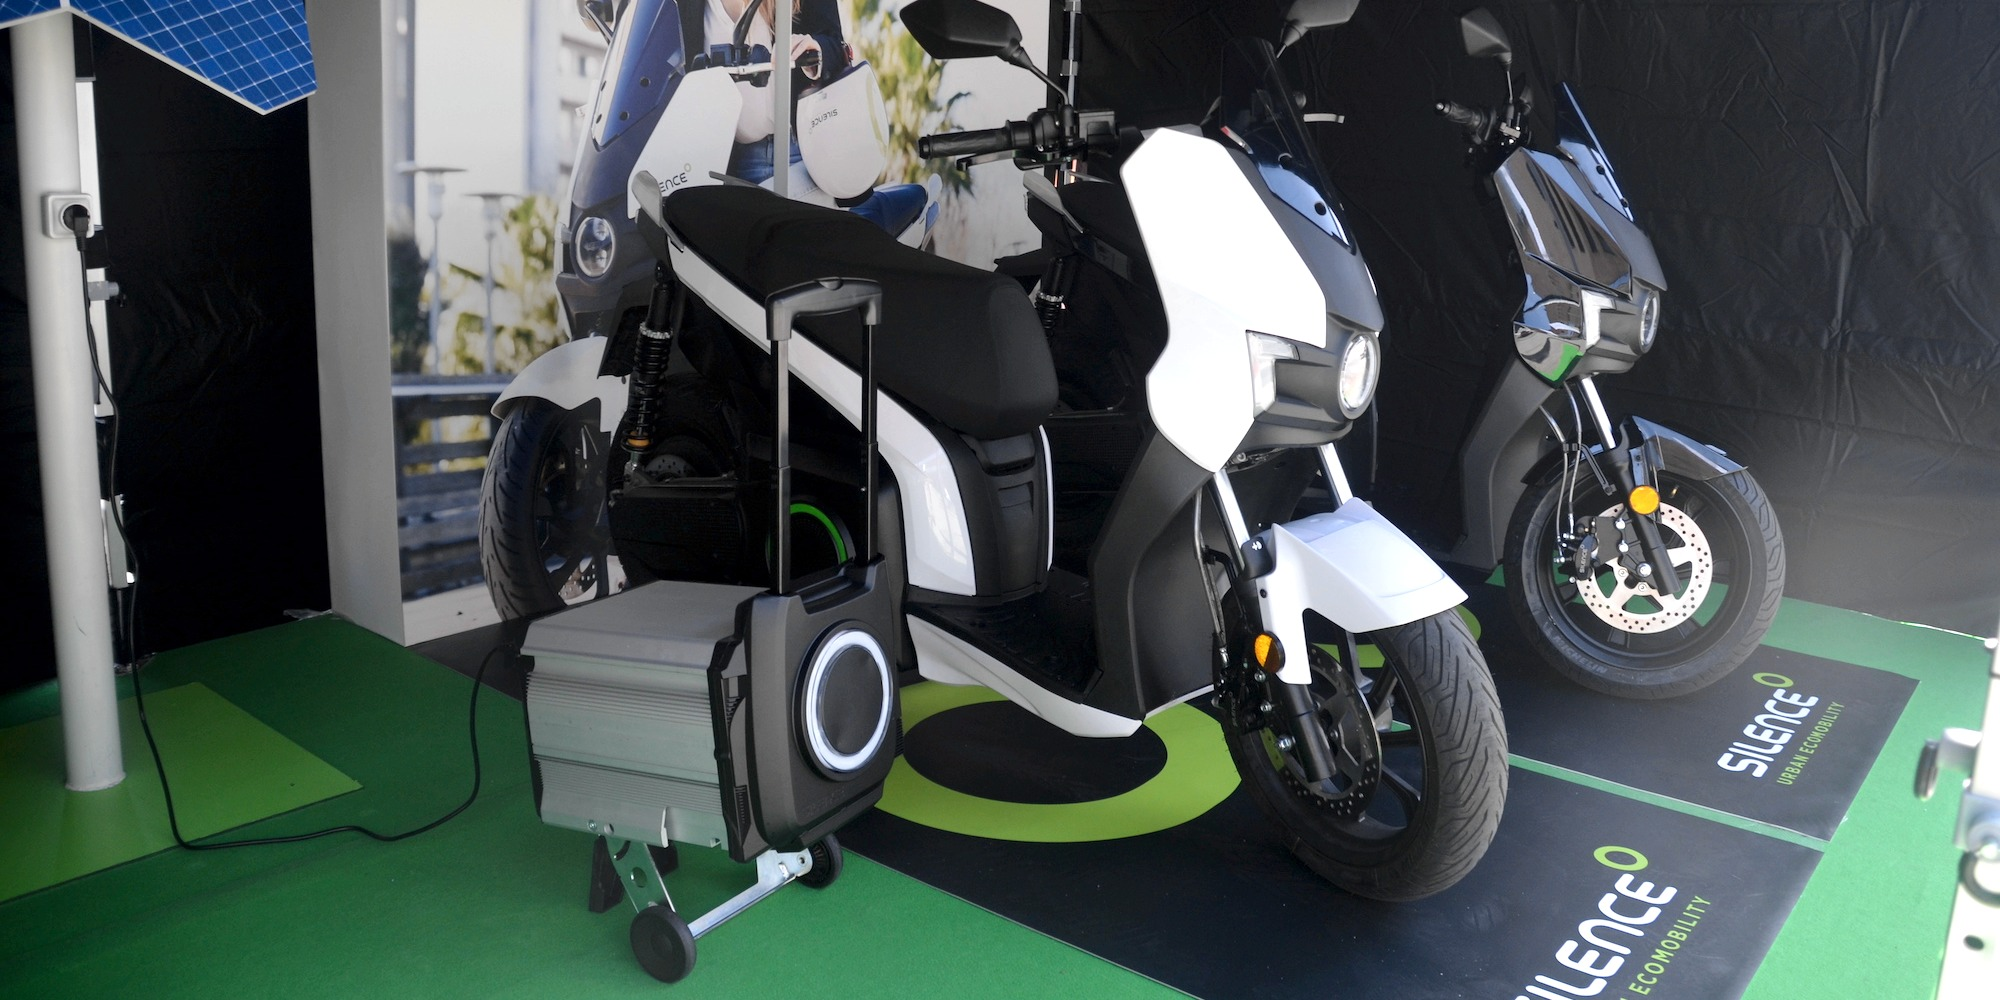 Electric Sit Down Scooter >> Up close with Silence's S01 100 km/h scooter with swappable rolling batteries - Electrek